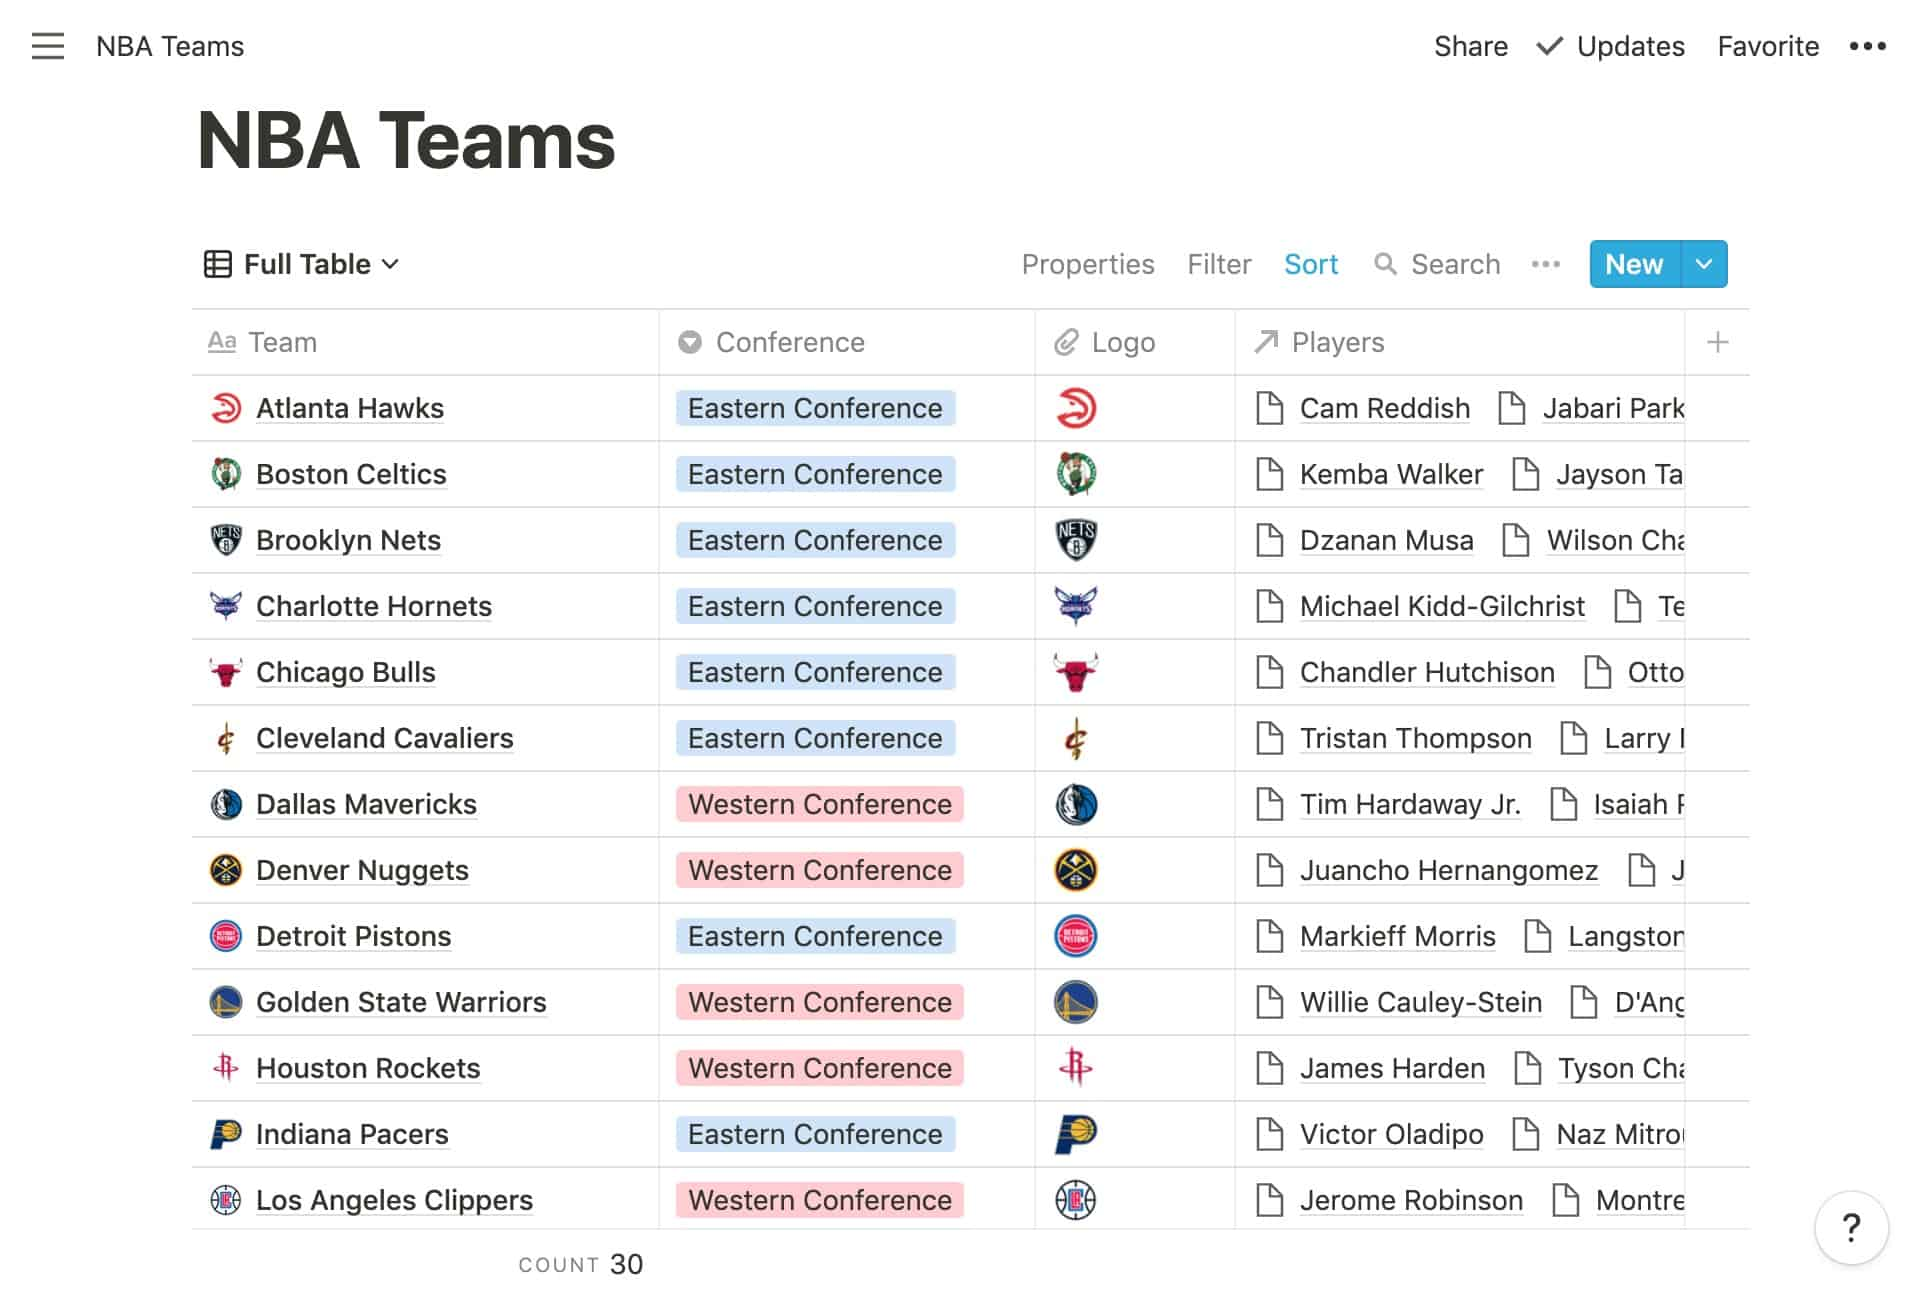 The NBA in Notion - Teams